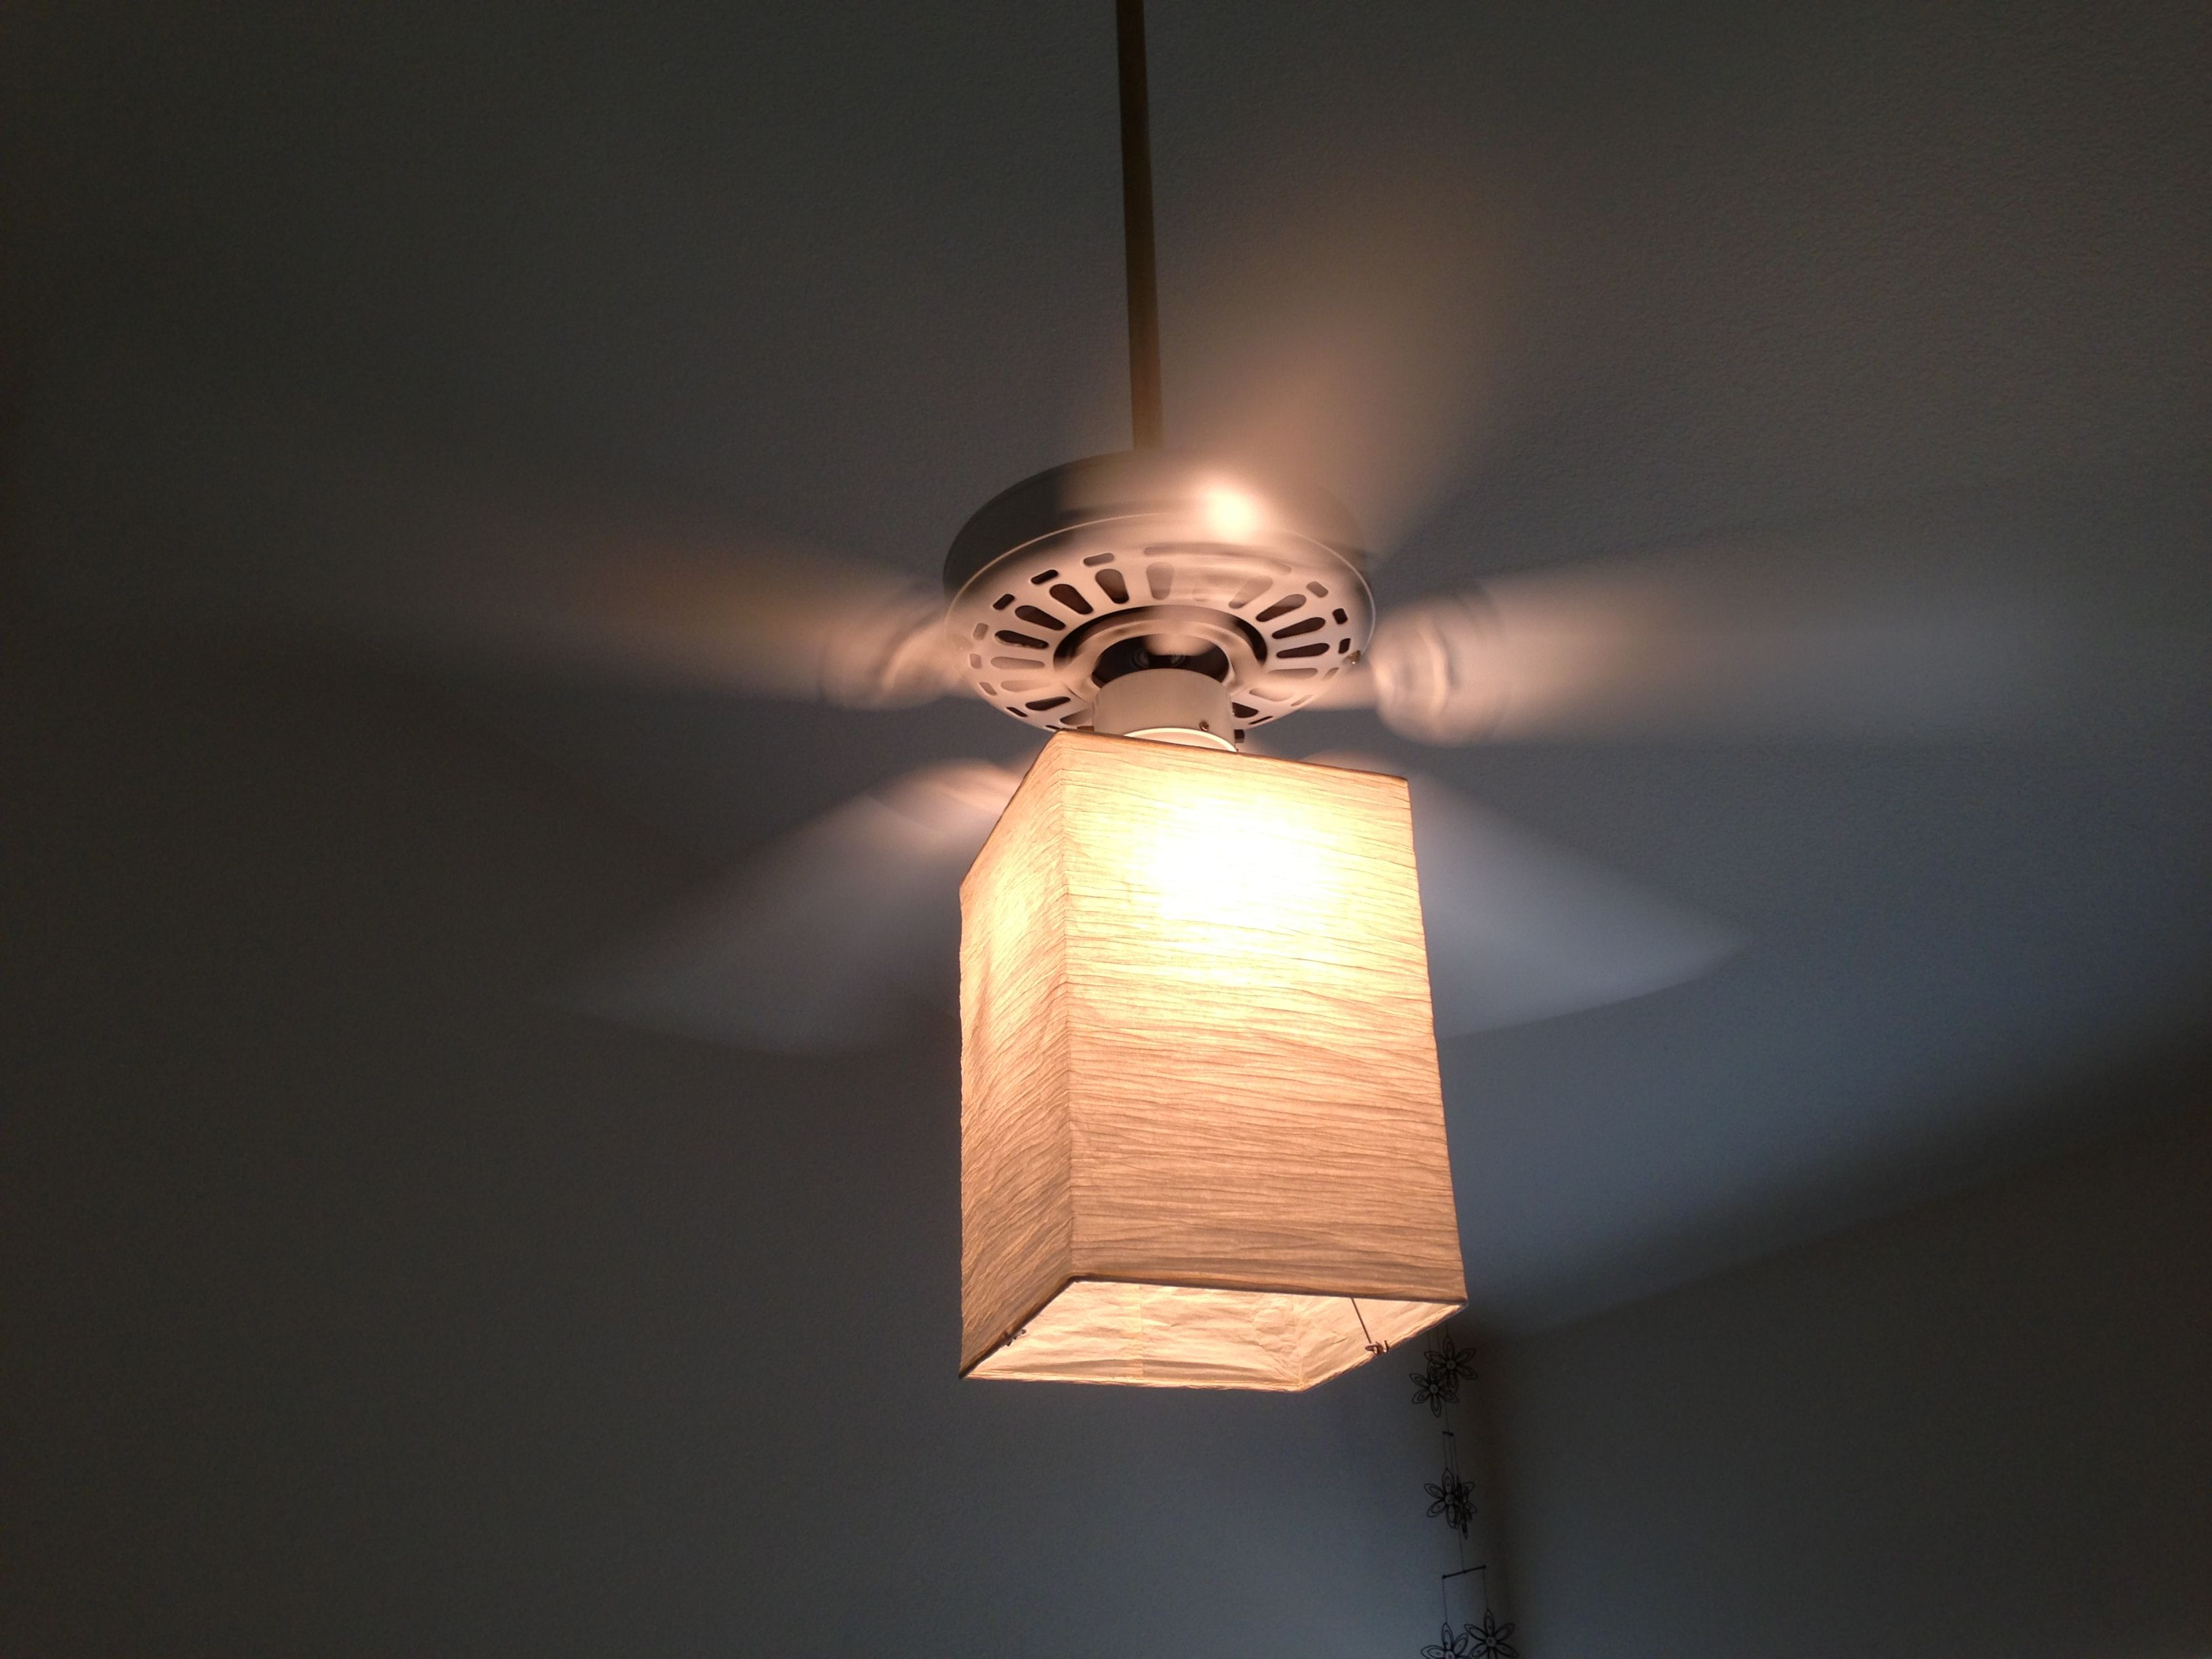 Replaced the four way lights with one of the light sockets from the ...